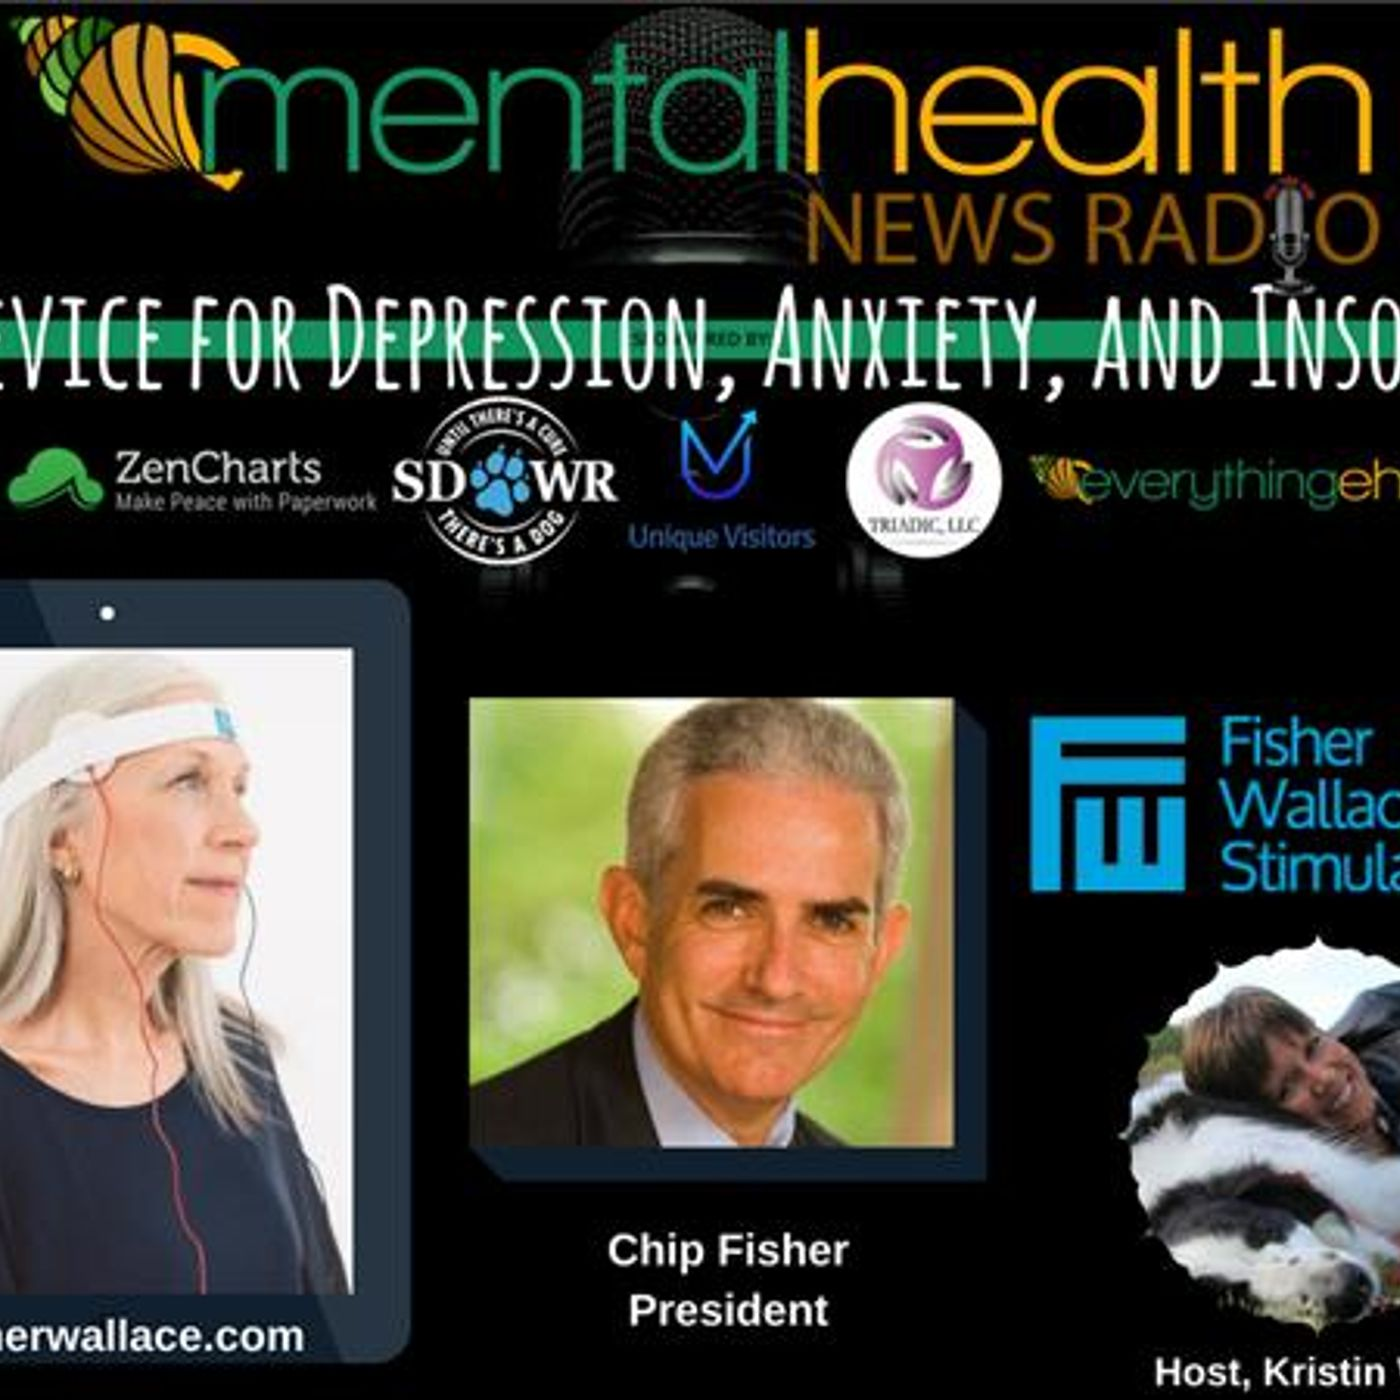 Mental Health News Radio - THE Device for Depression, Anxiety, and Insomnia with President Chip Fisher